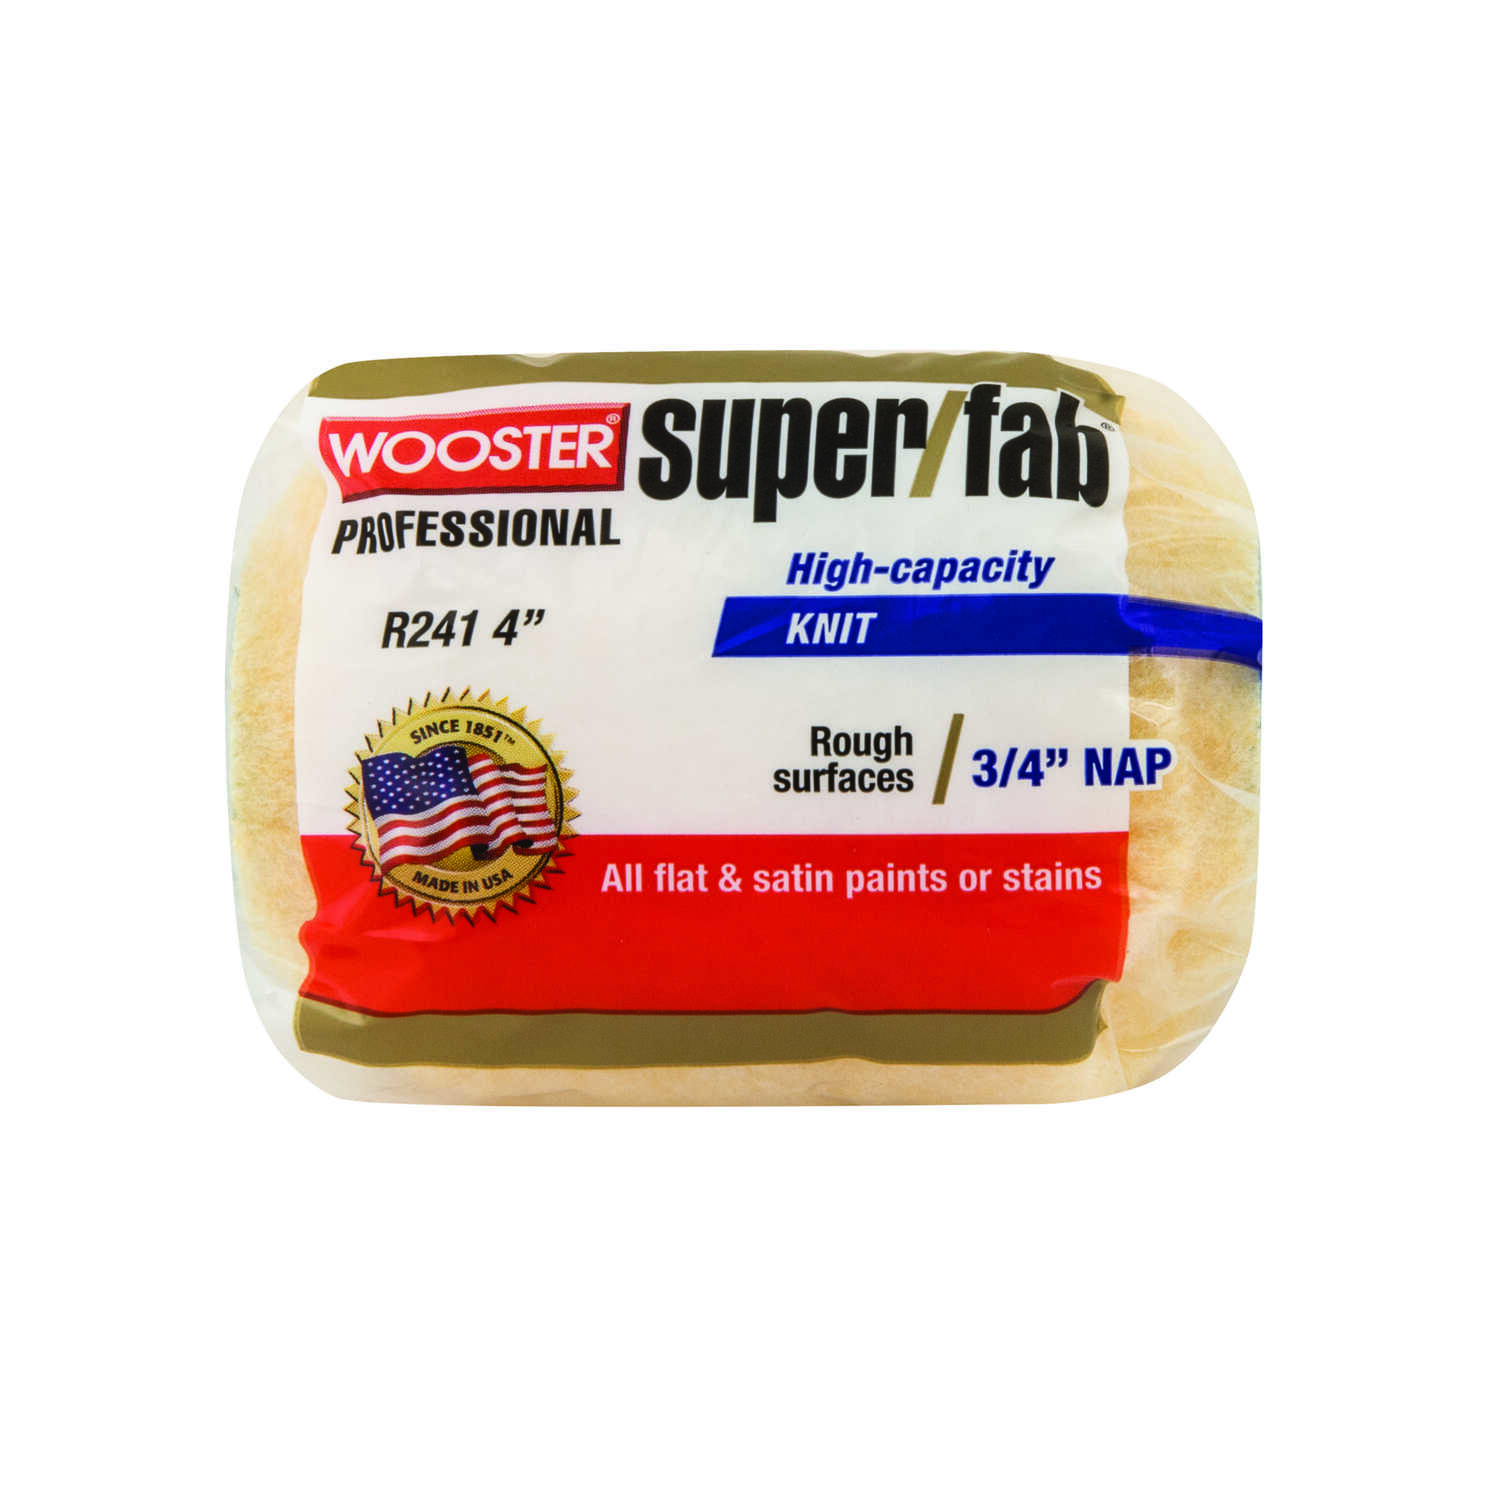 Wooster  Super/Fab  Fabric  3/4 in.  x 4 in. W Regular  Paint Roller Cover  1 pk